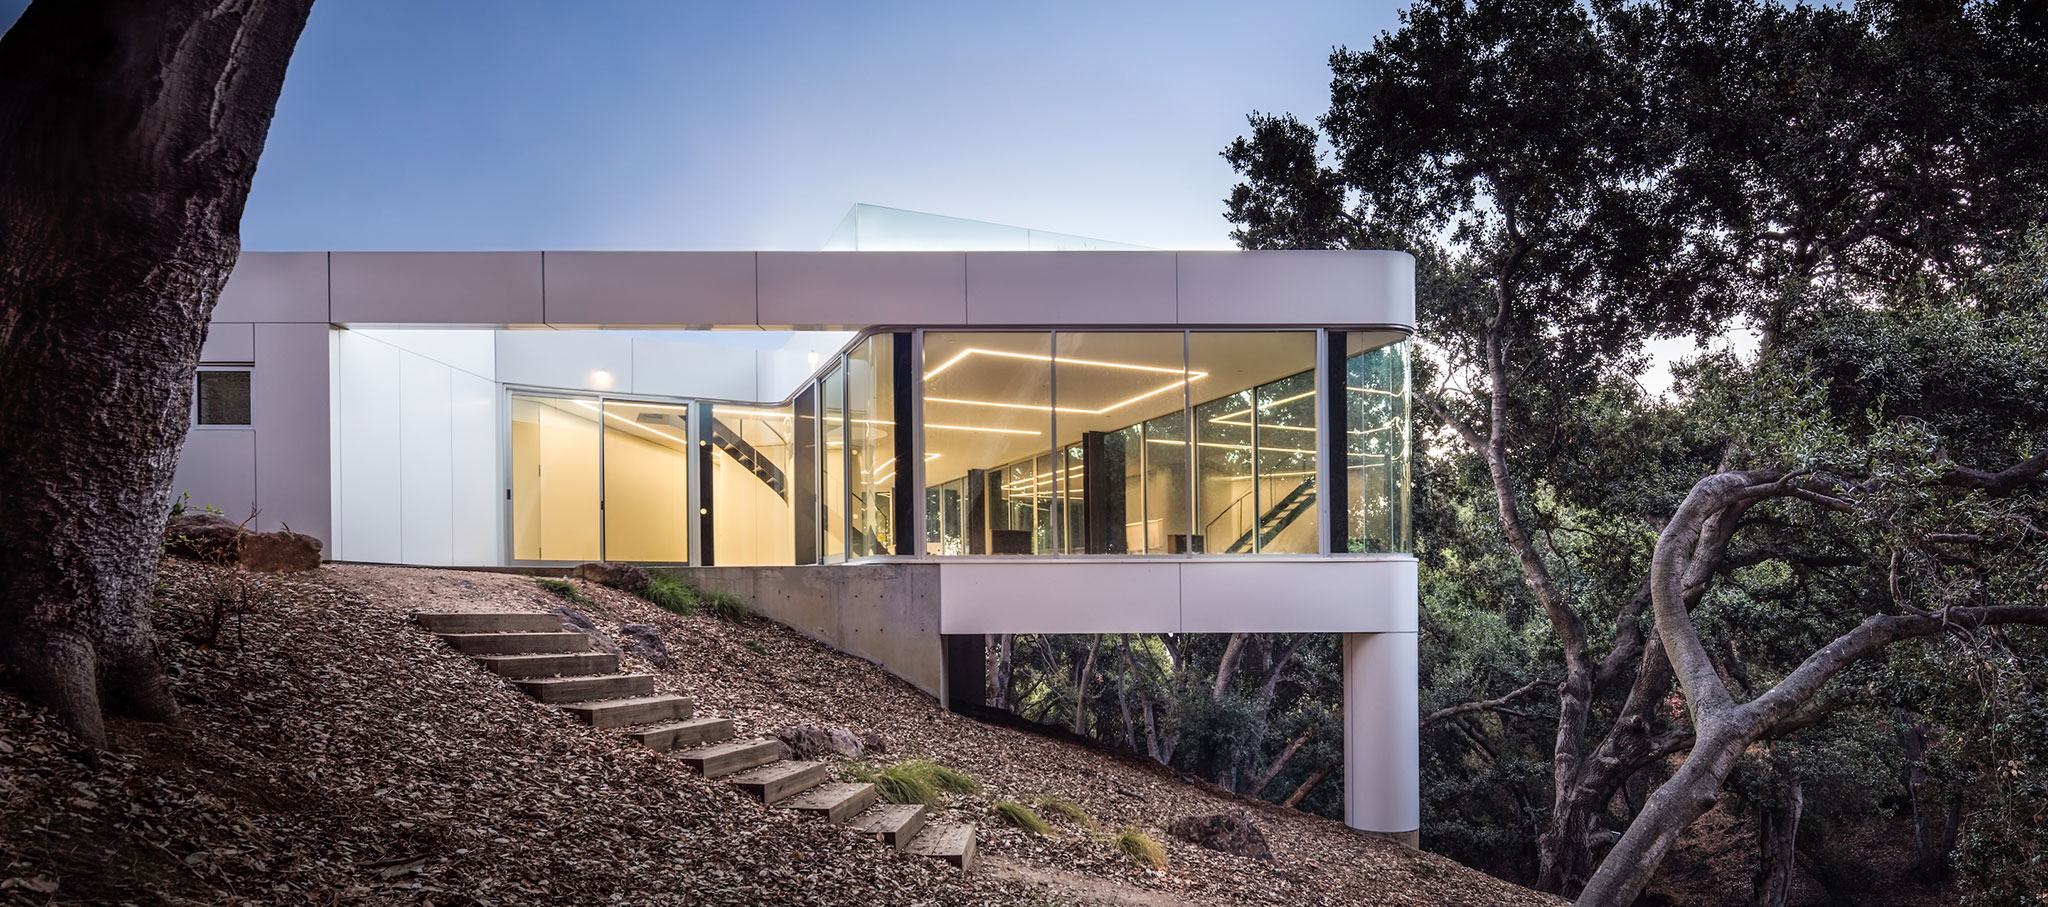 Pam s house in cupertino by craig steely architecture the strength of architecture from 1998